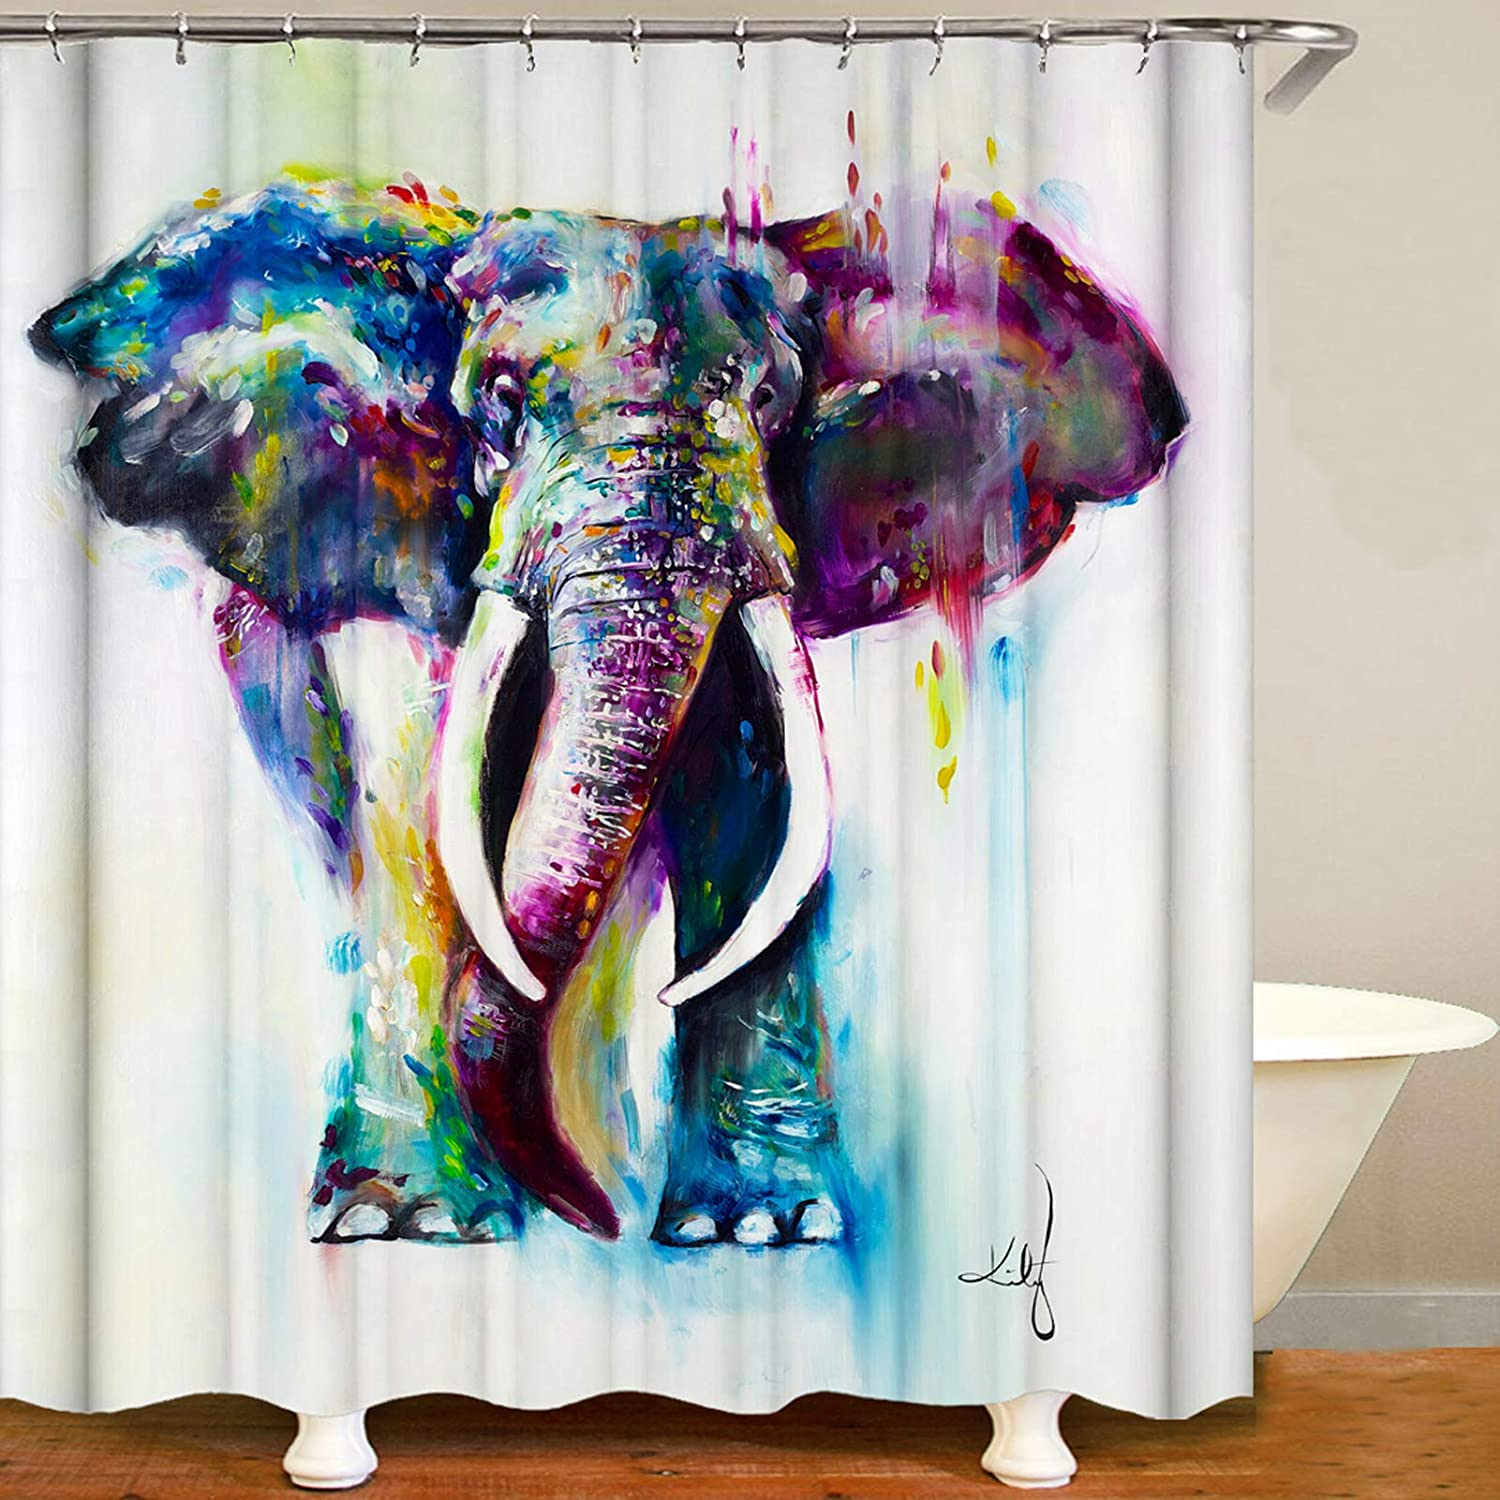 Colorful Elephant Shower Curtain for Bathroom, Funny Animal Shower Curtain Set, Fabric Polyester Shower Curtain Decor with Hooks Waterproof 72x72.